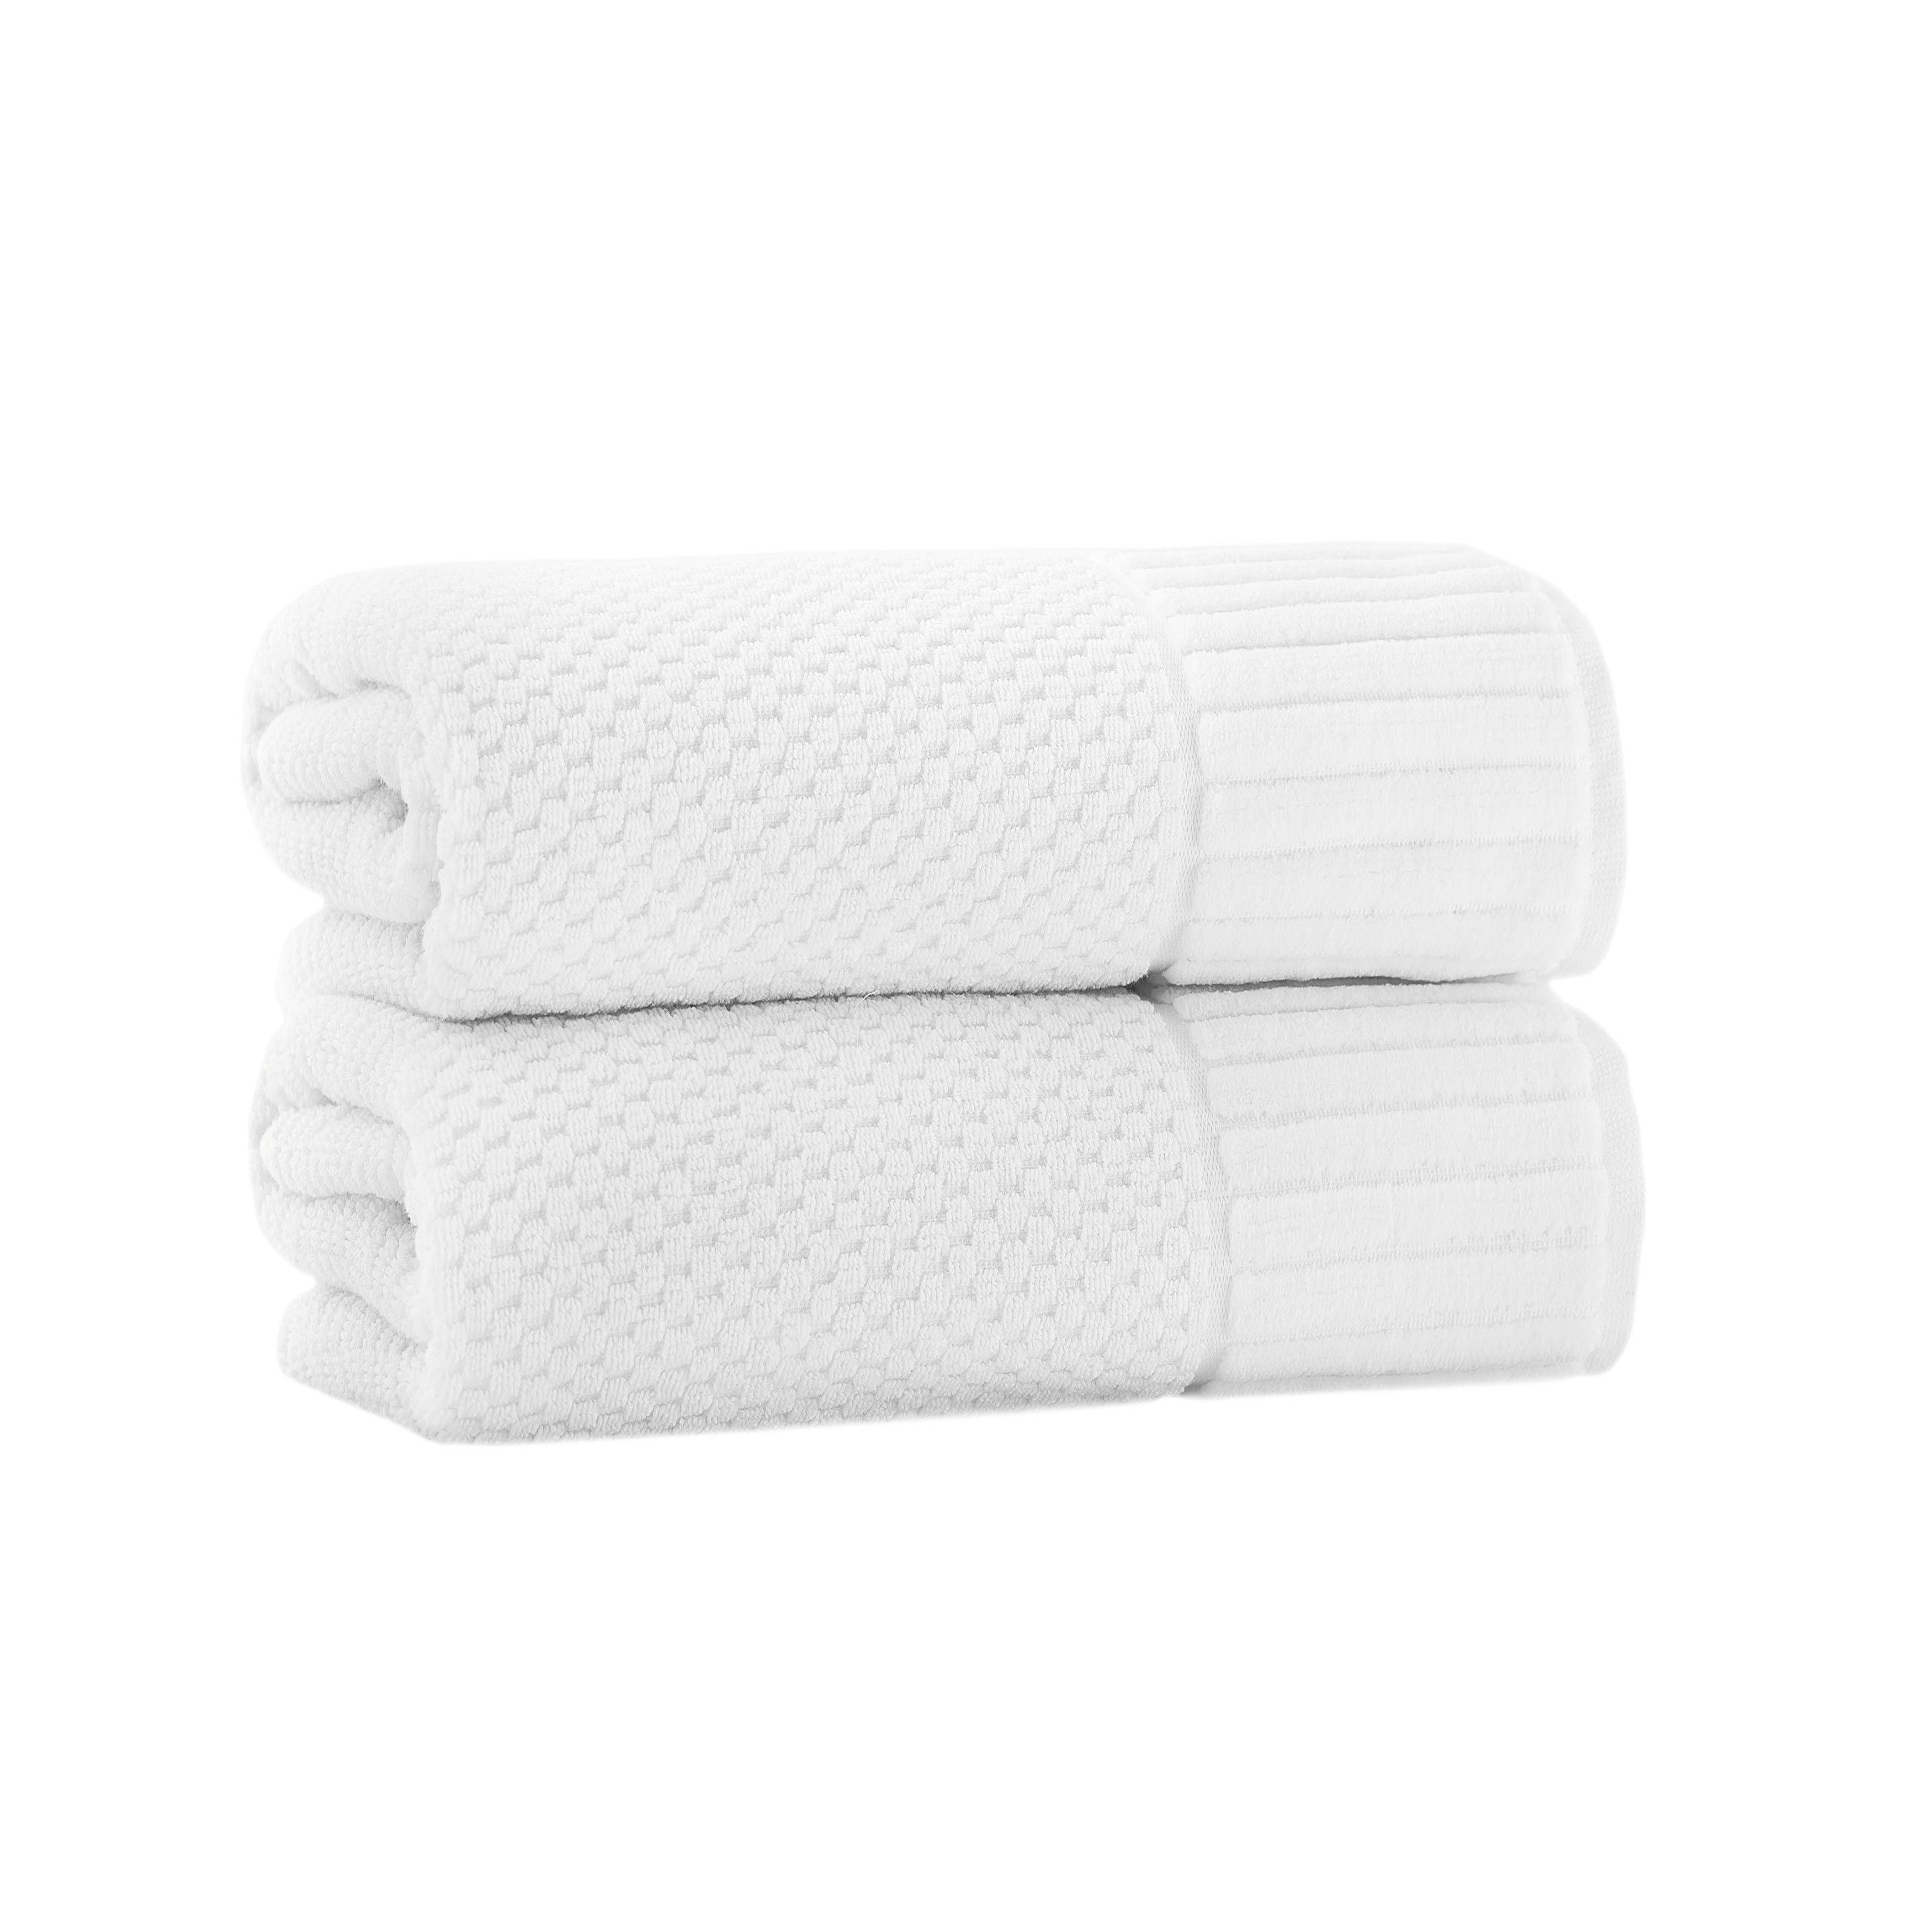 thumbnail 29 - The-Gray-Barn-Scharbauer-Bath-Towels-Set-of-2